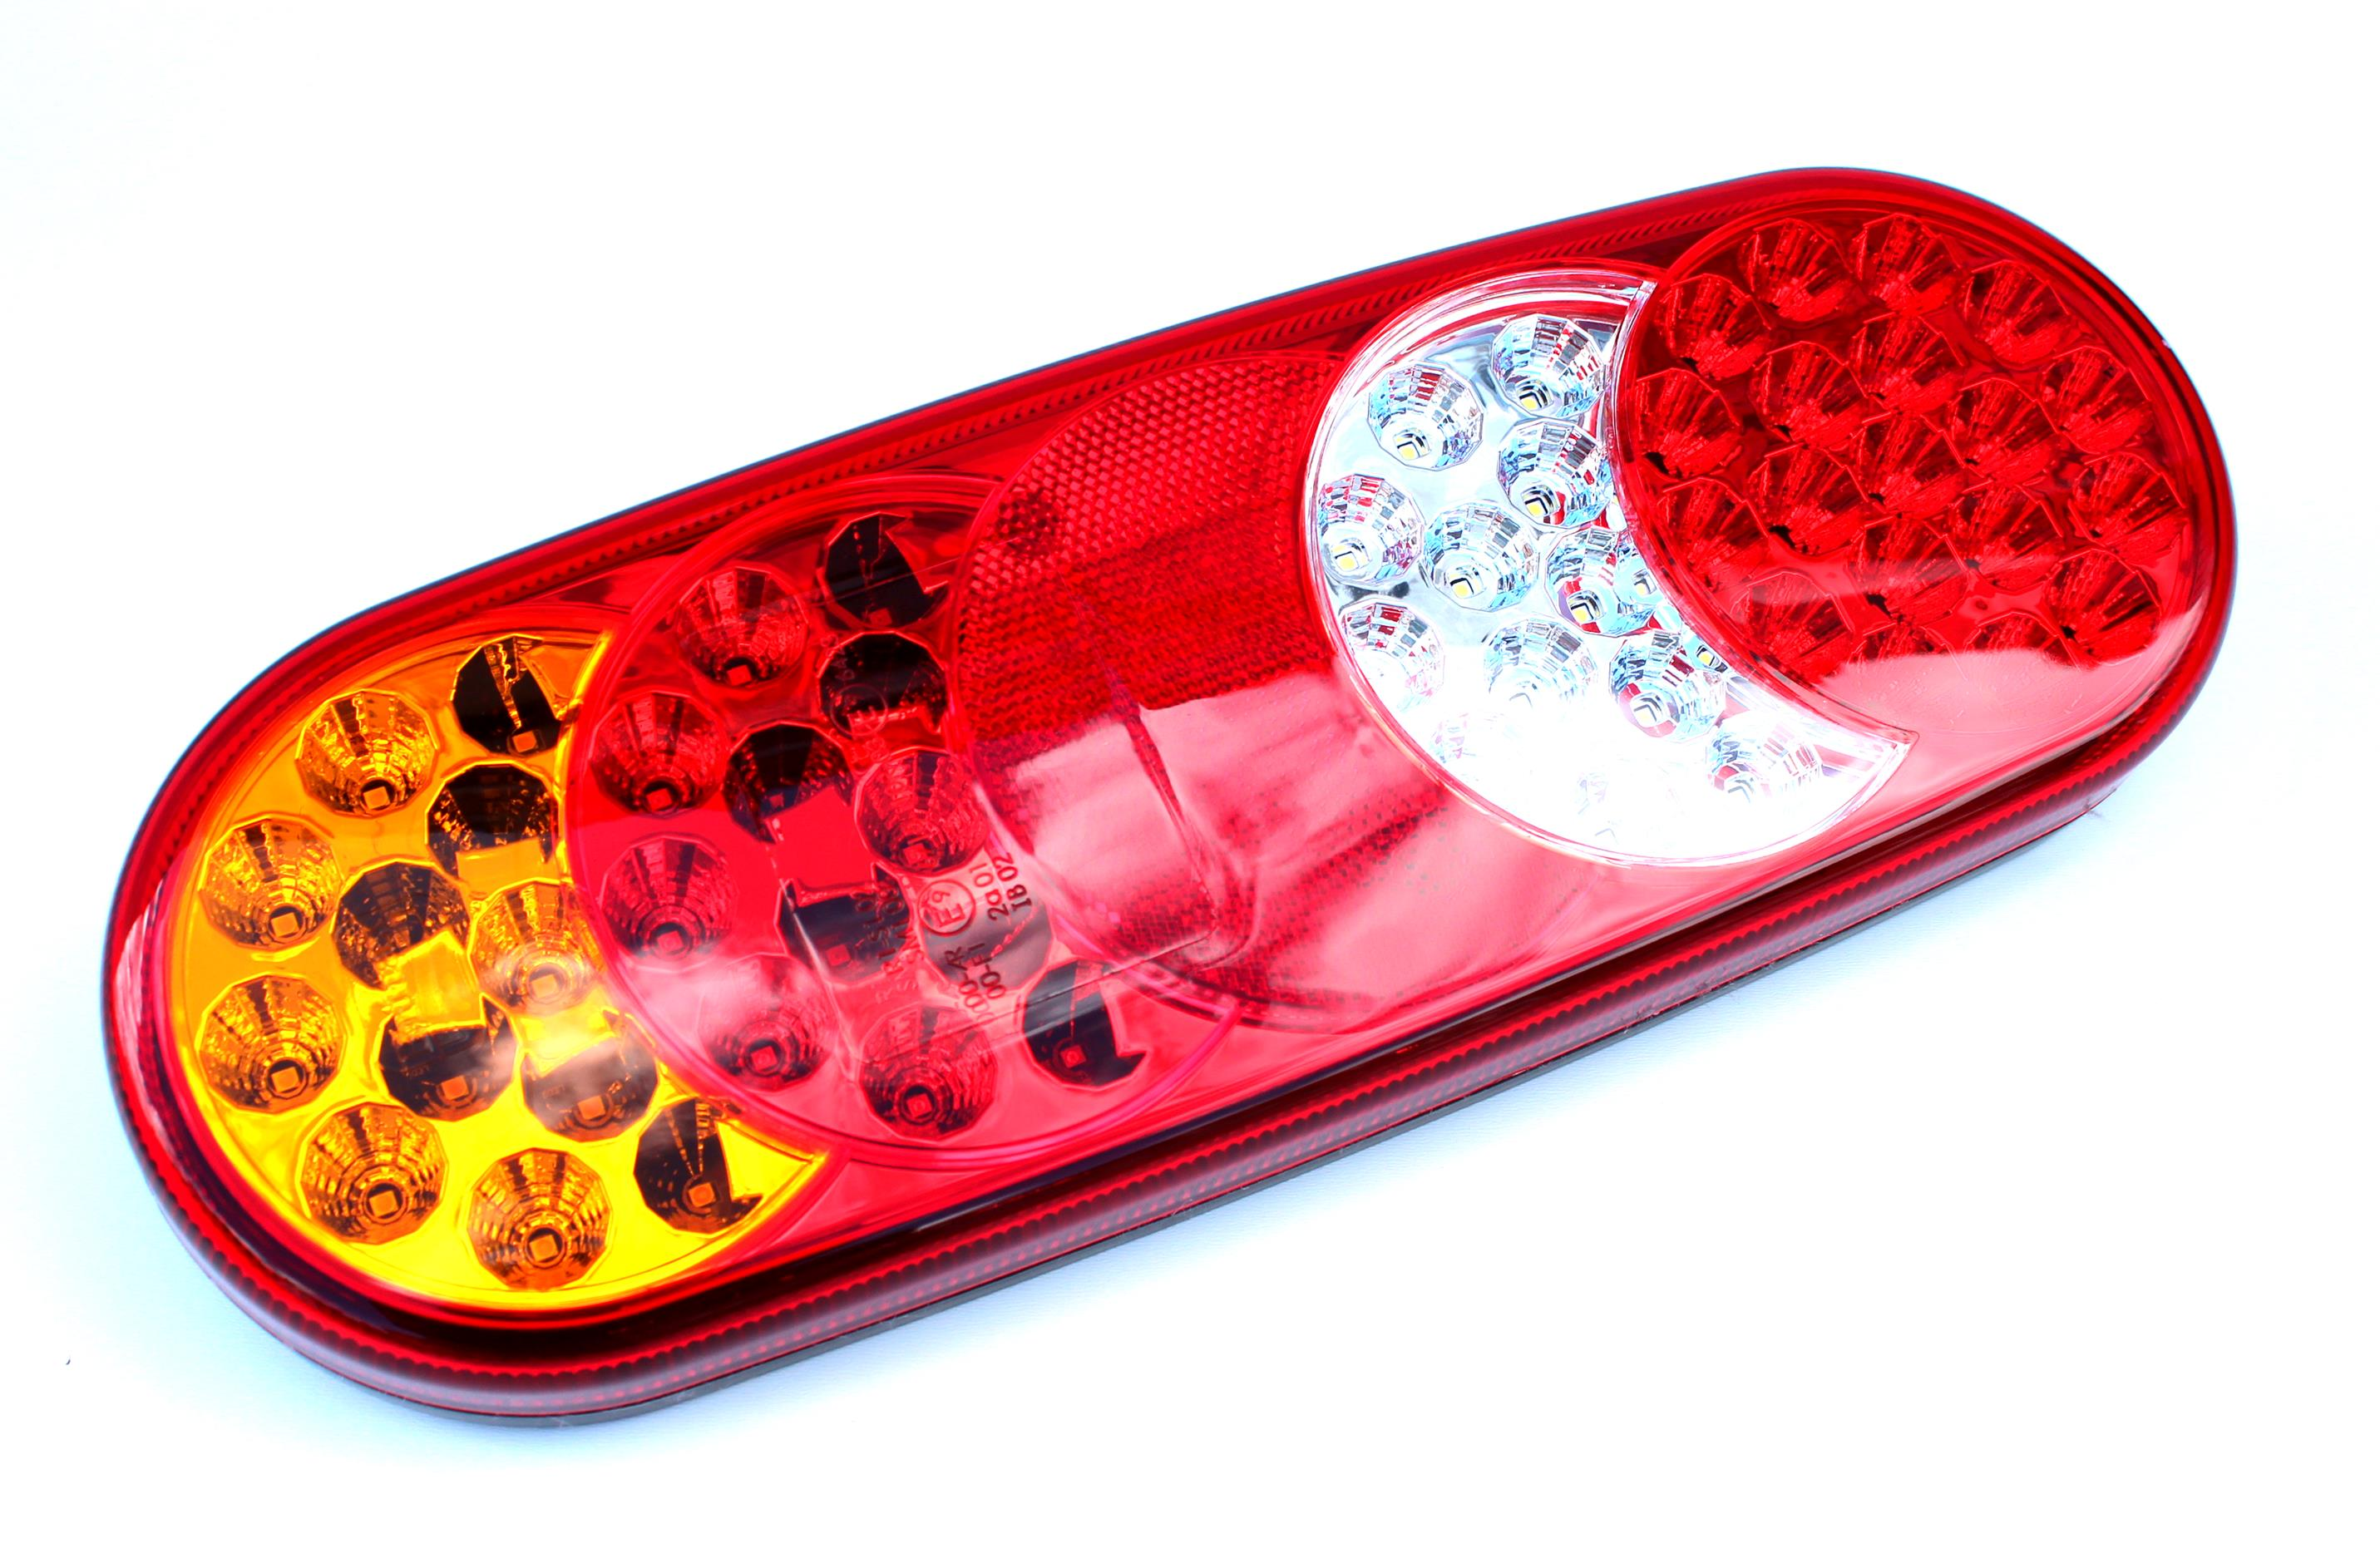 Britax L78 LED rear lamp